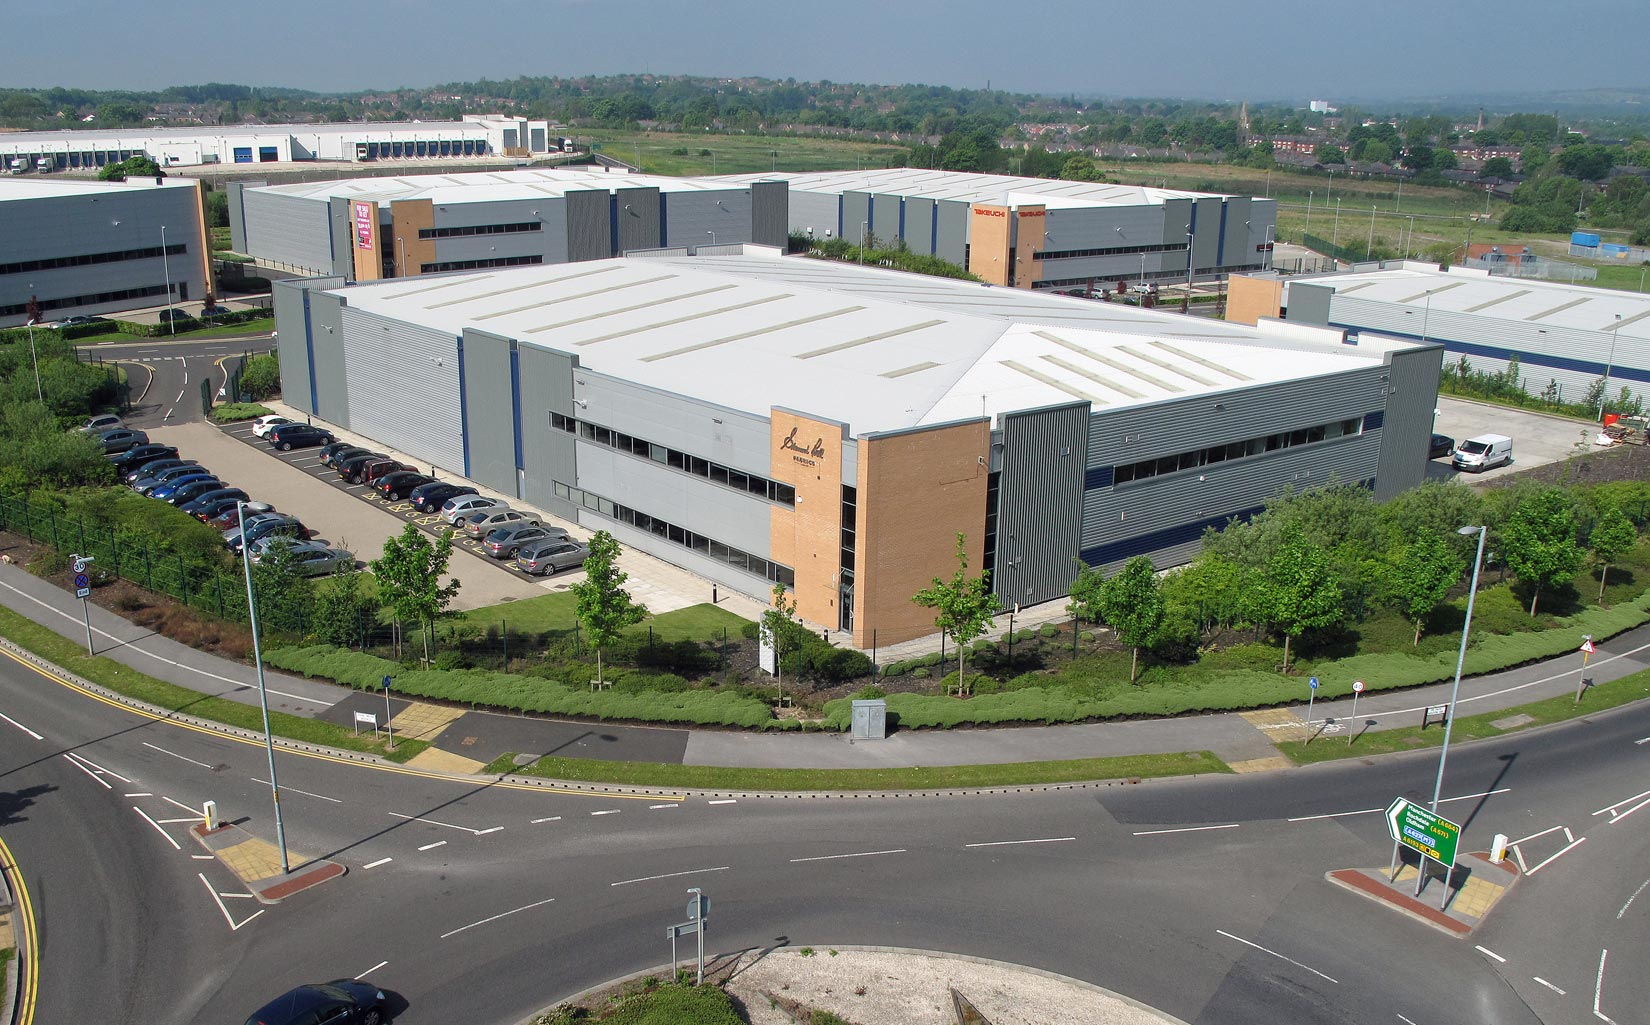 Kingsway Business Park, Milnrow, Rochdale, Units